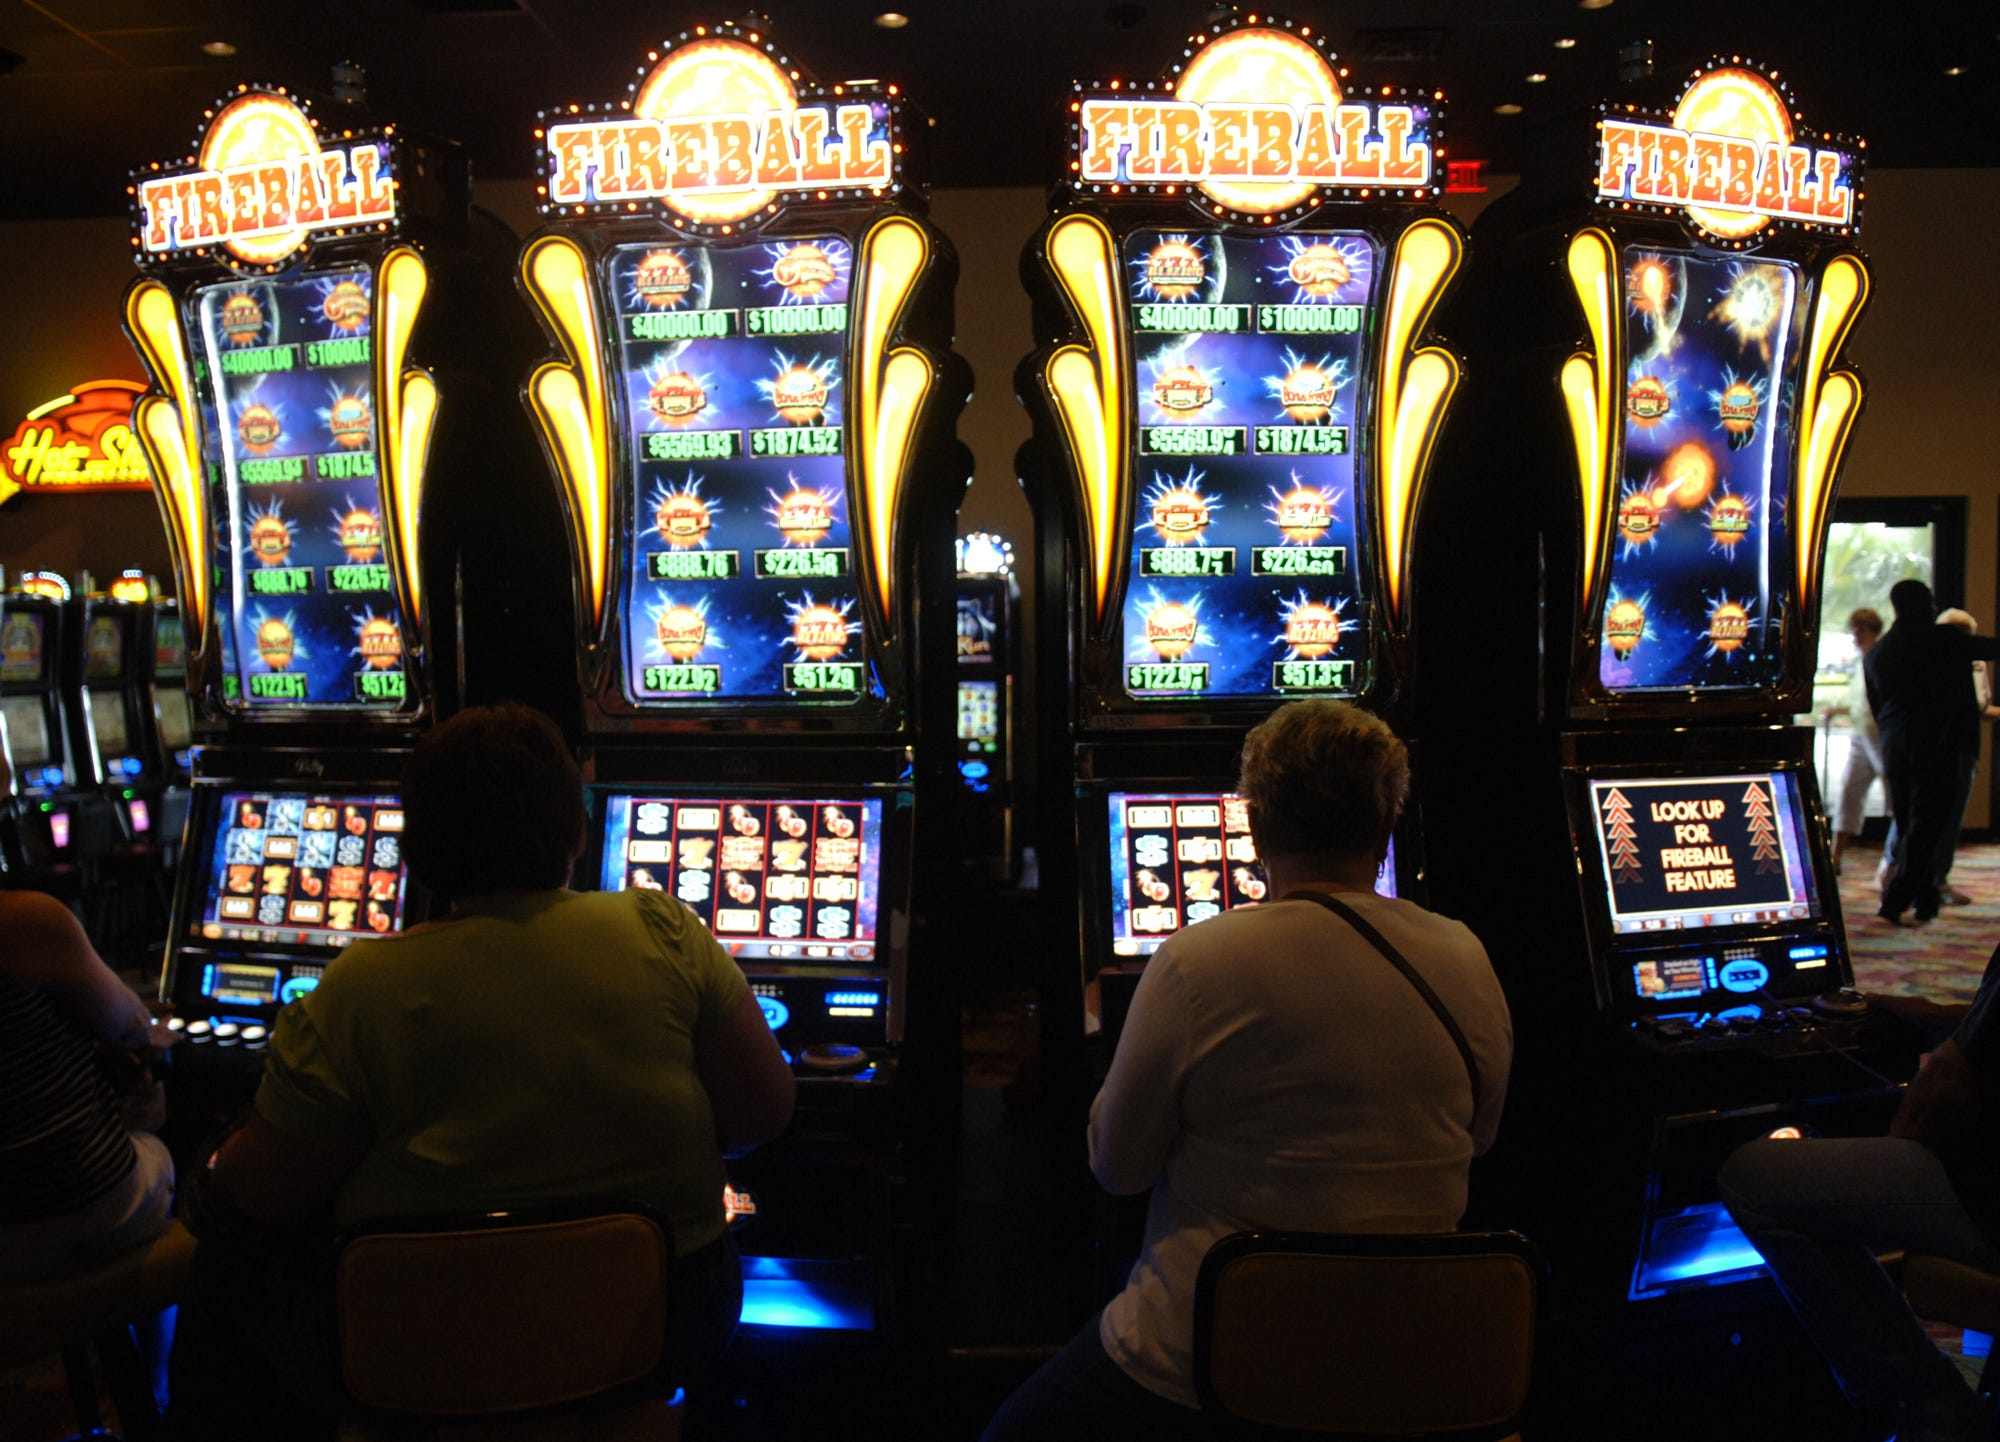 Boards circuit considered device gambling inside machine printed slot circus casino in reno